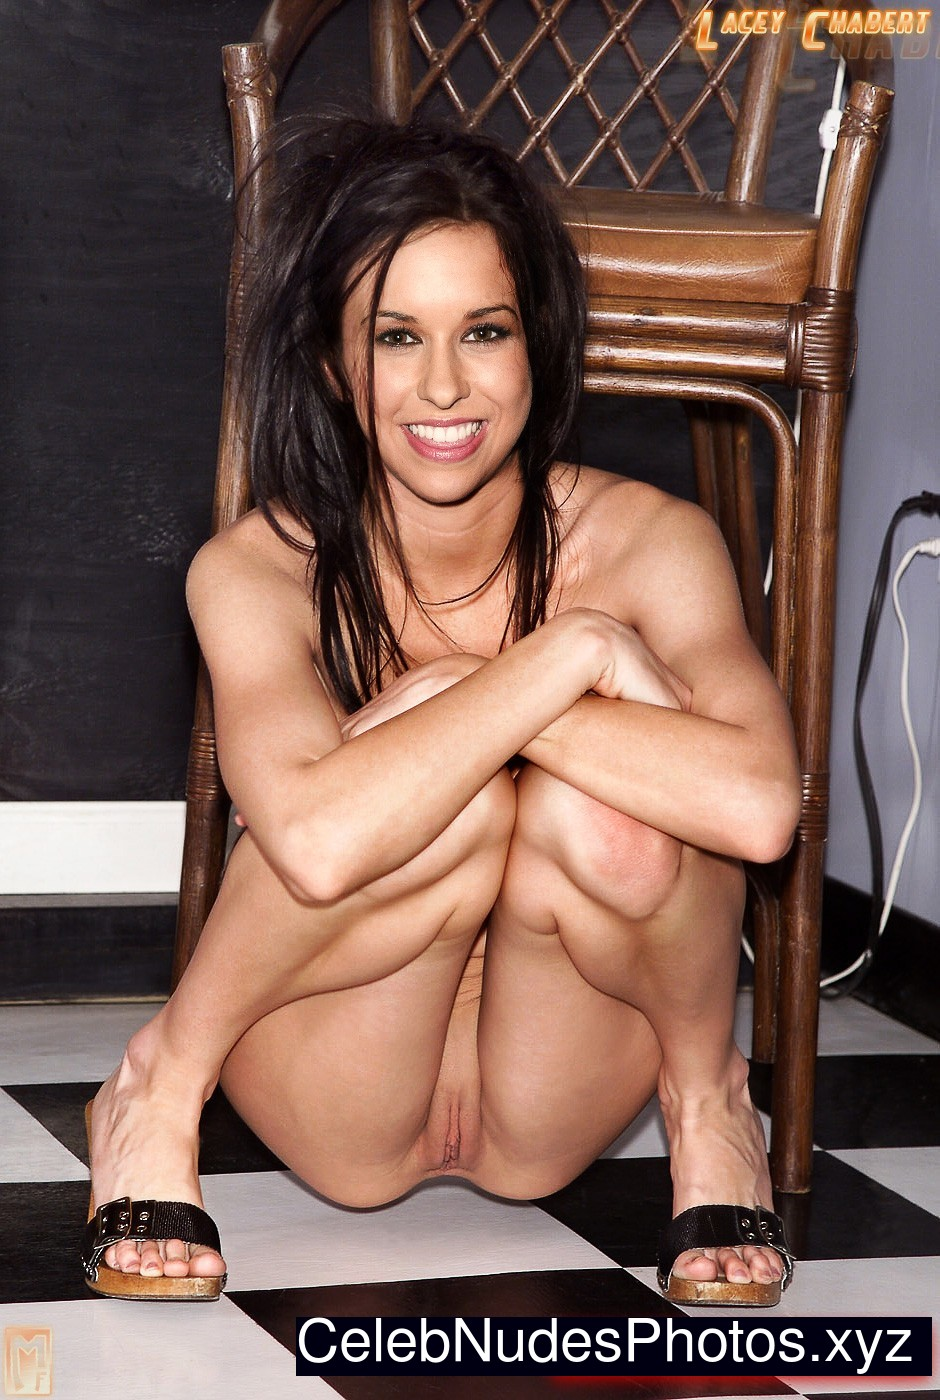 lacey chabert sexy nude